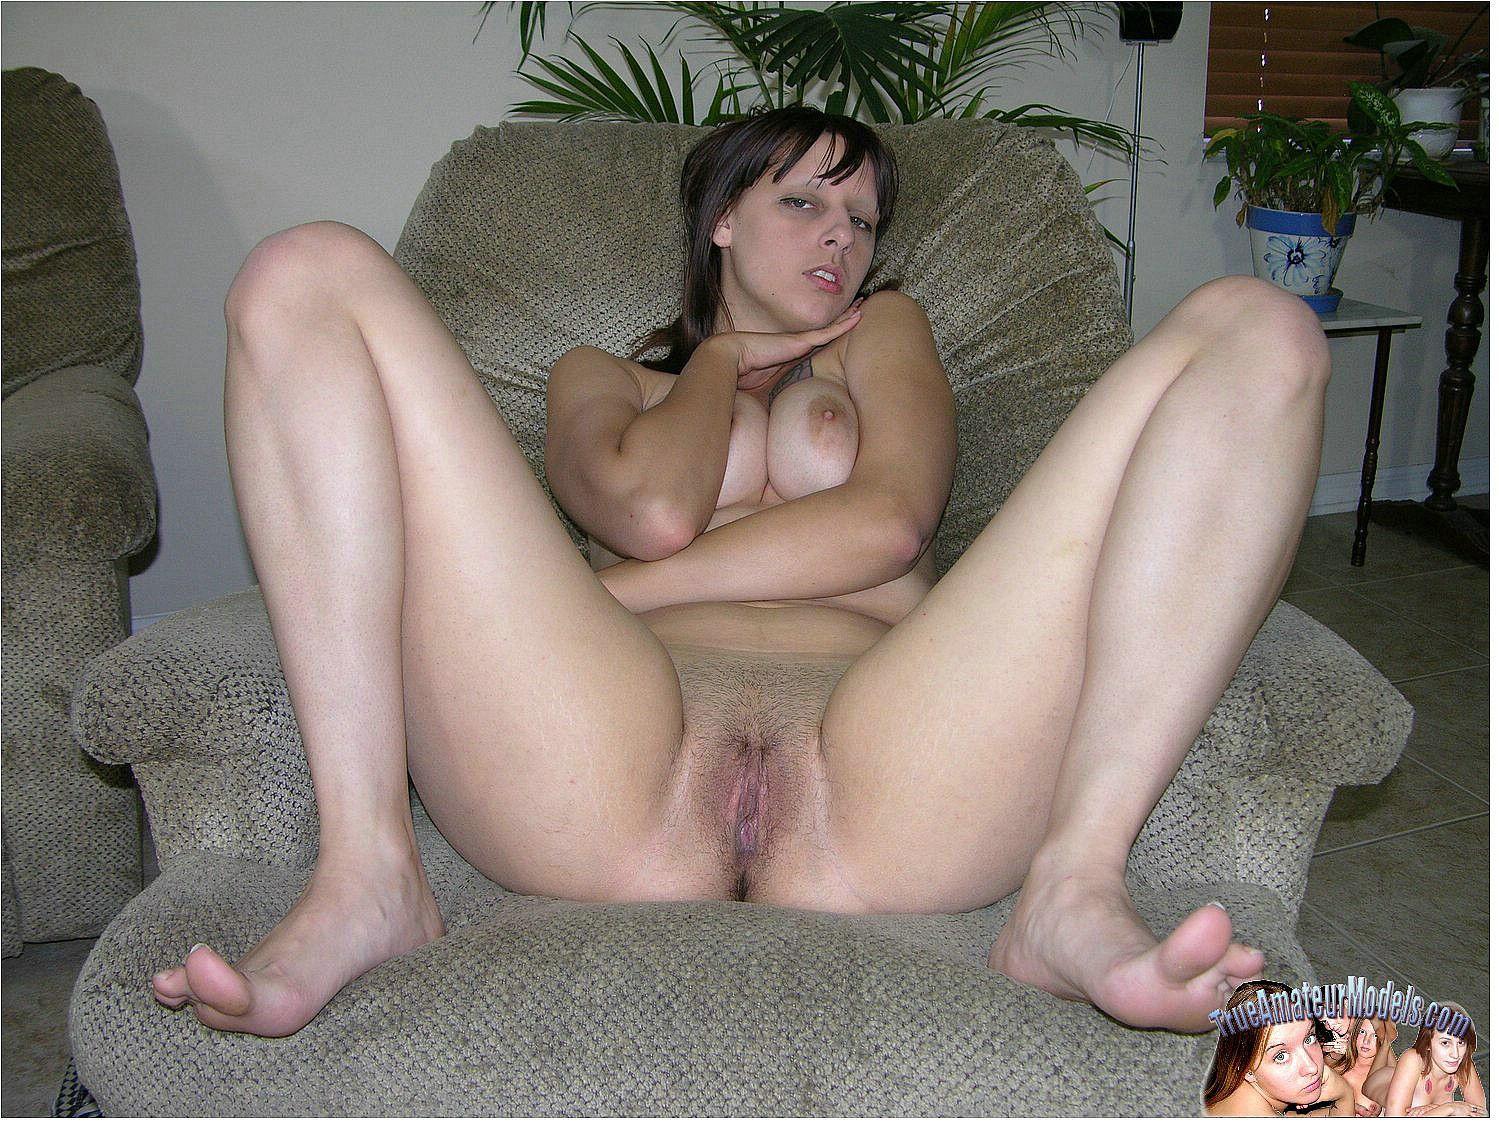 Hot year old emo girl nude